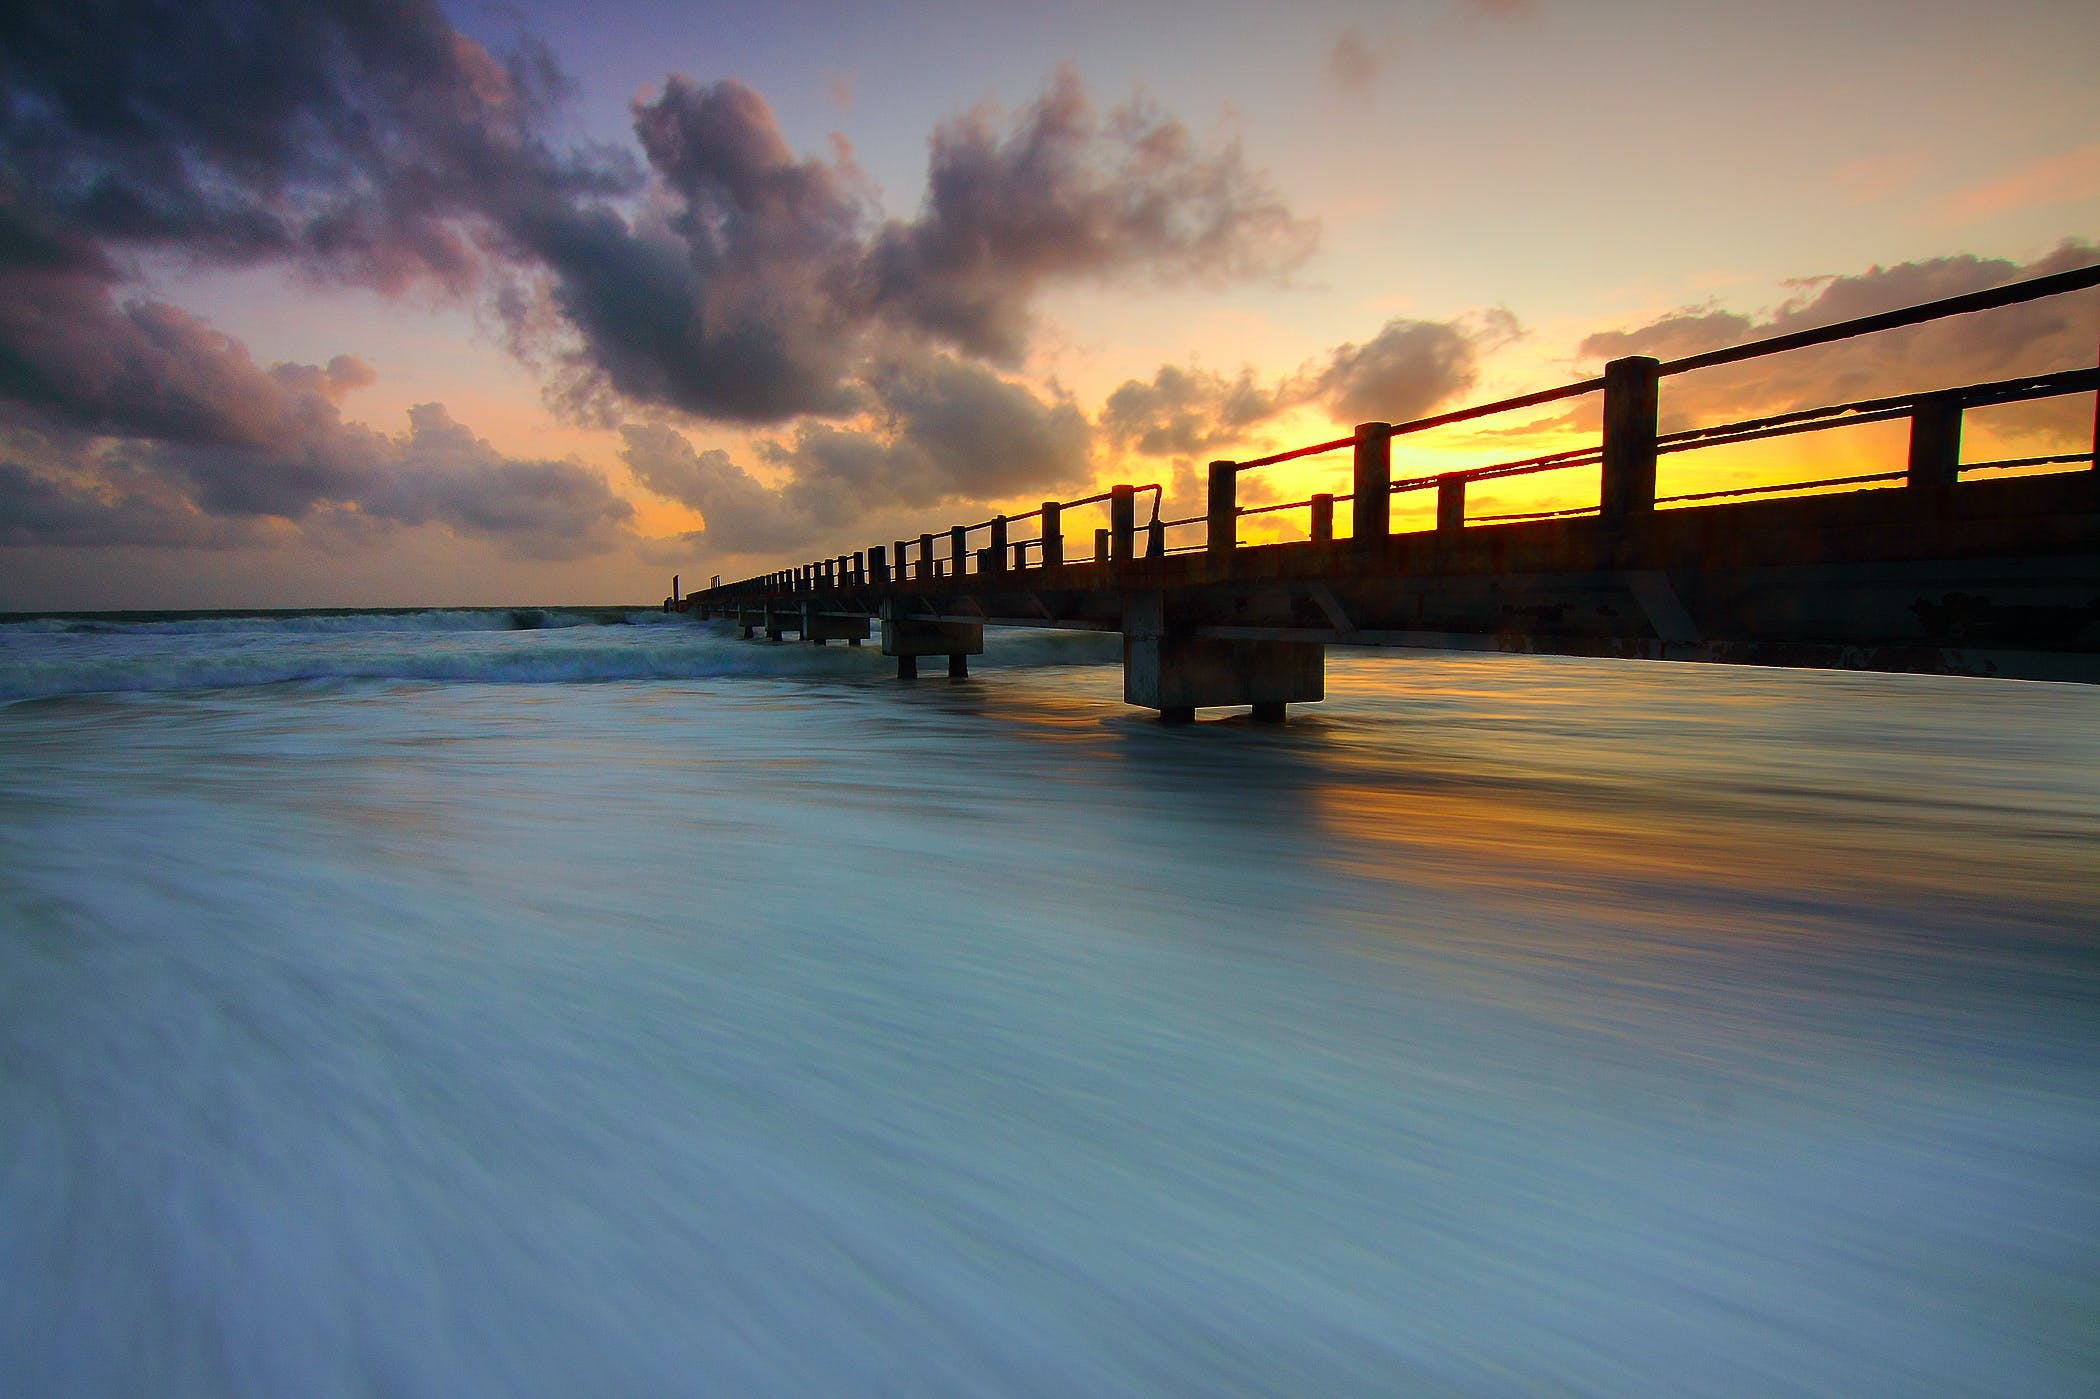 Wooden Pier on Ocean Waves